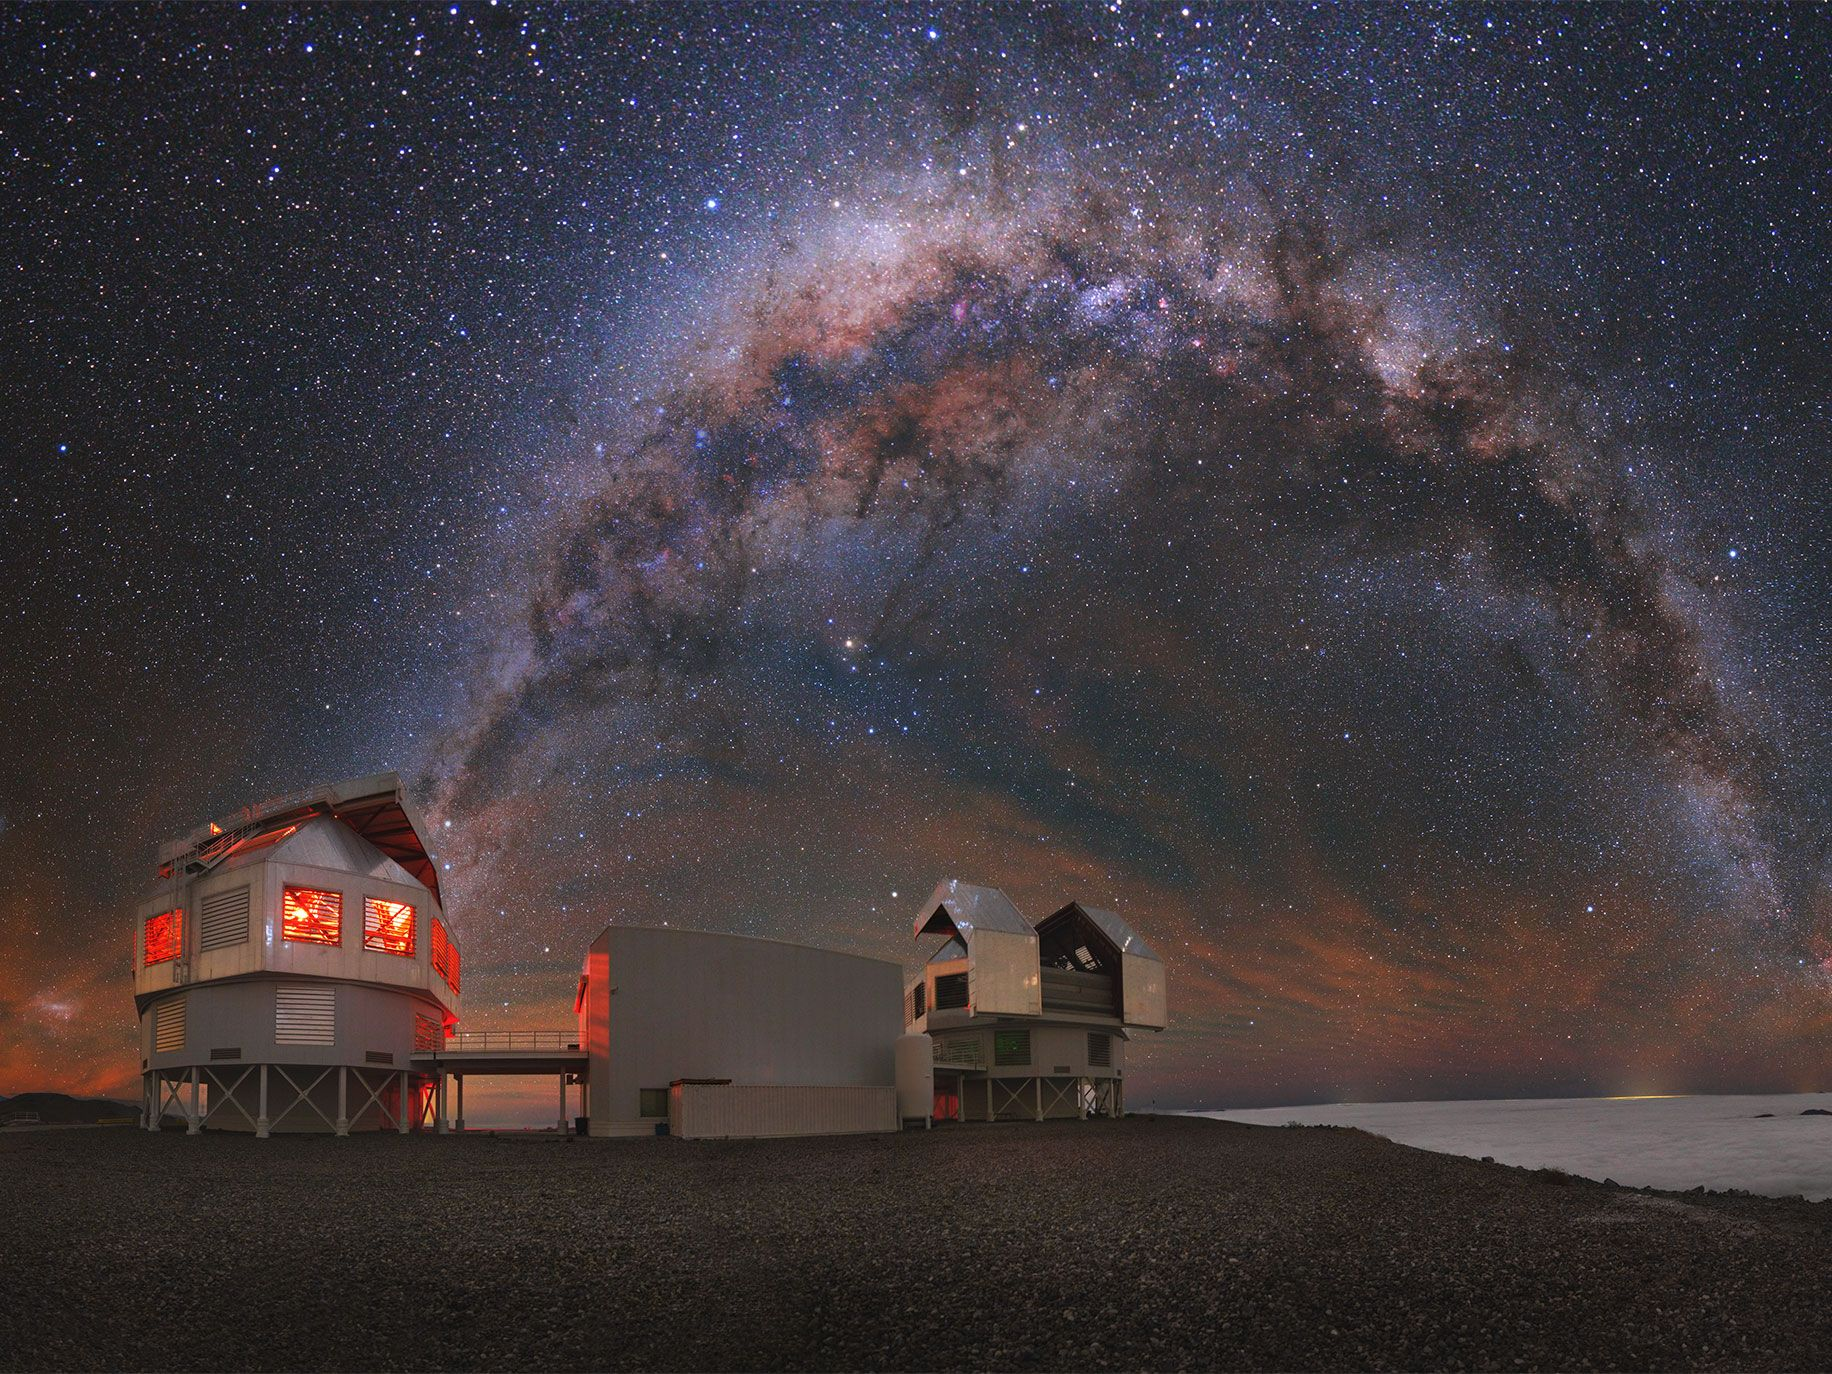 The Milky Way shines over the Las Campanas observatory in Chile, one of the facilities that helped to confirm the existence of gravitational waves last summer. The orange cloudlike effect in the sky comes from an especially bright atmospheric afterglow.